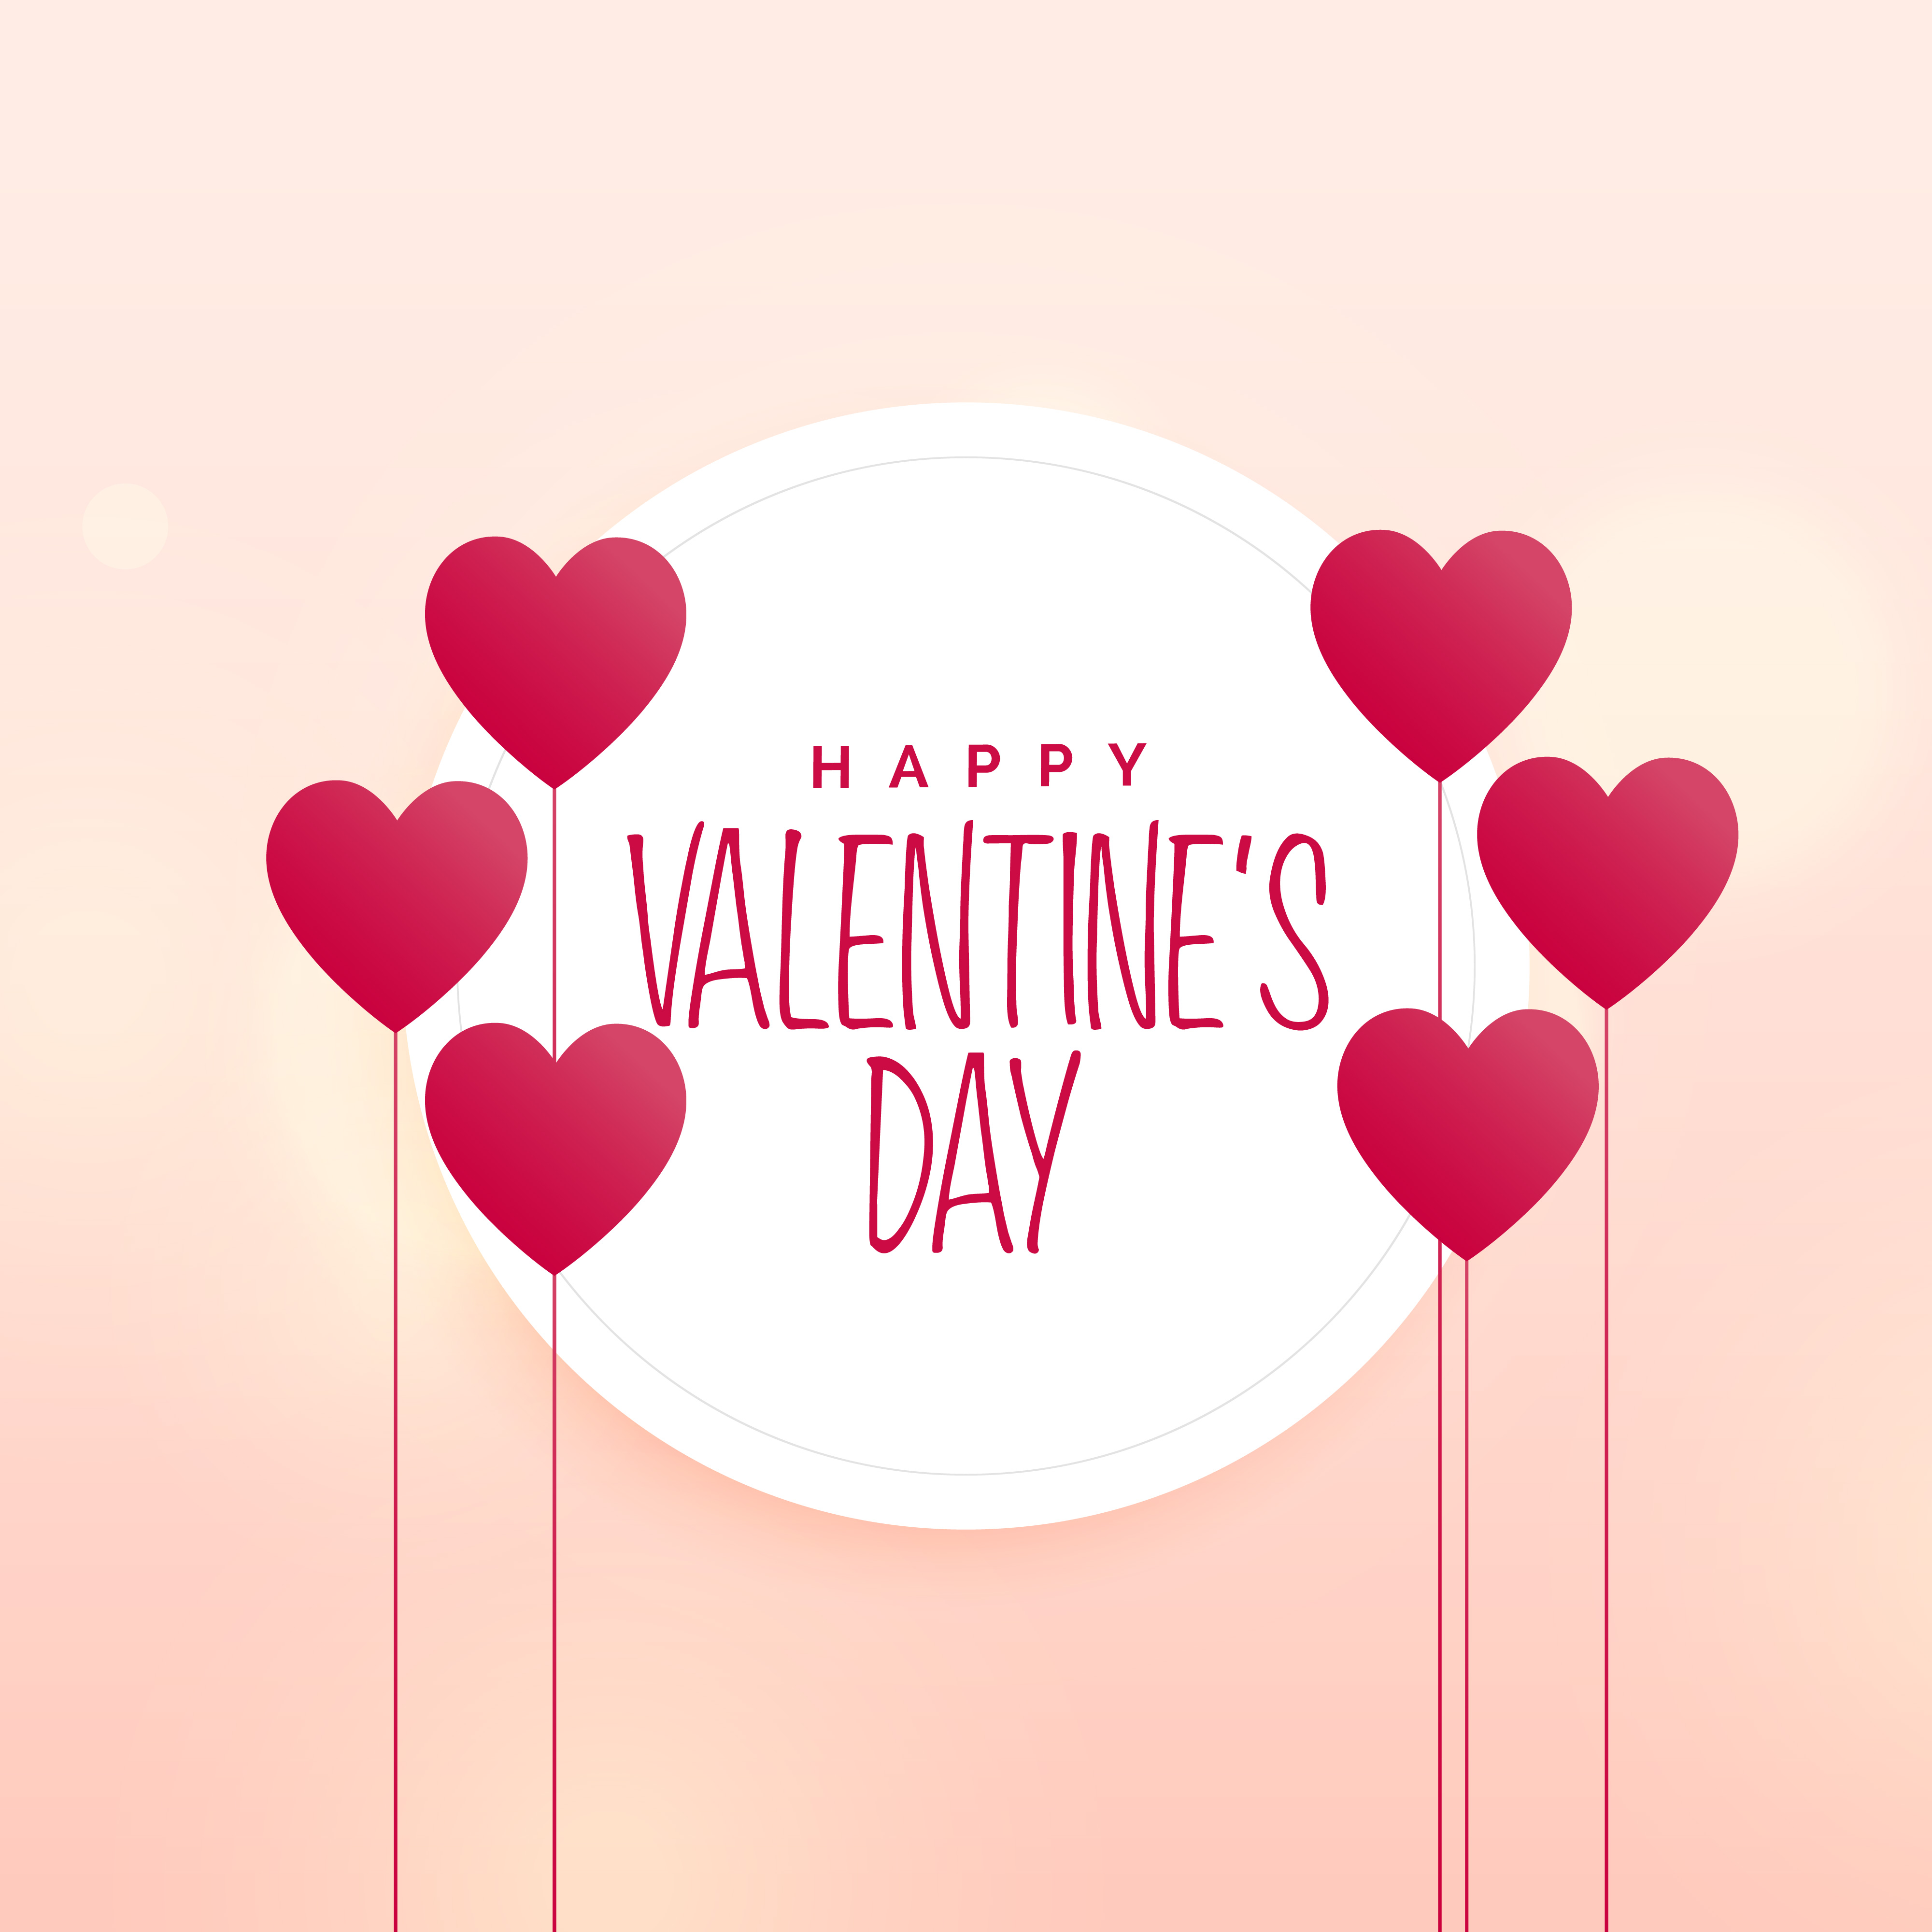 Happy valentine 39 s day cute heart background download free vector art stock graphics images - Cute valentines backgrounds ...